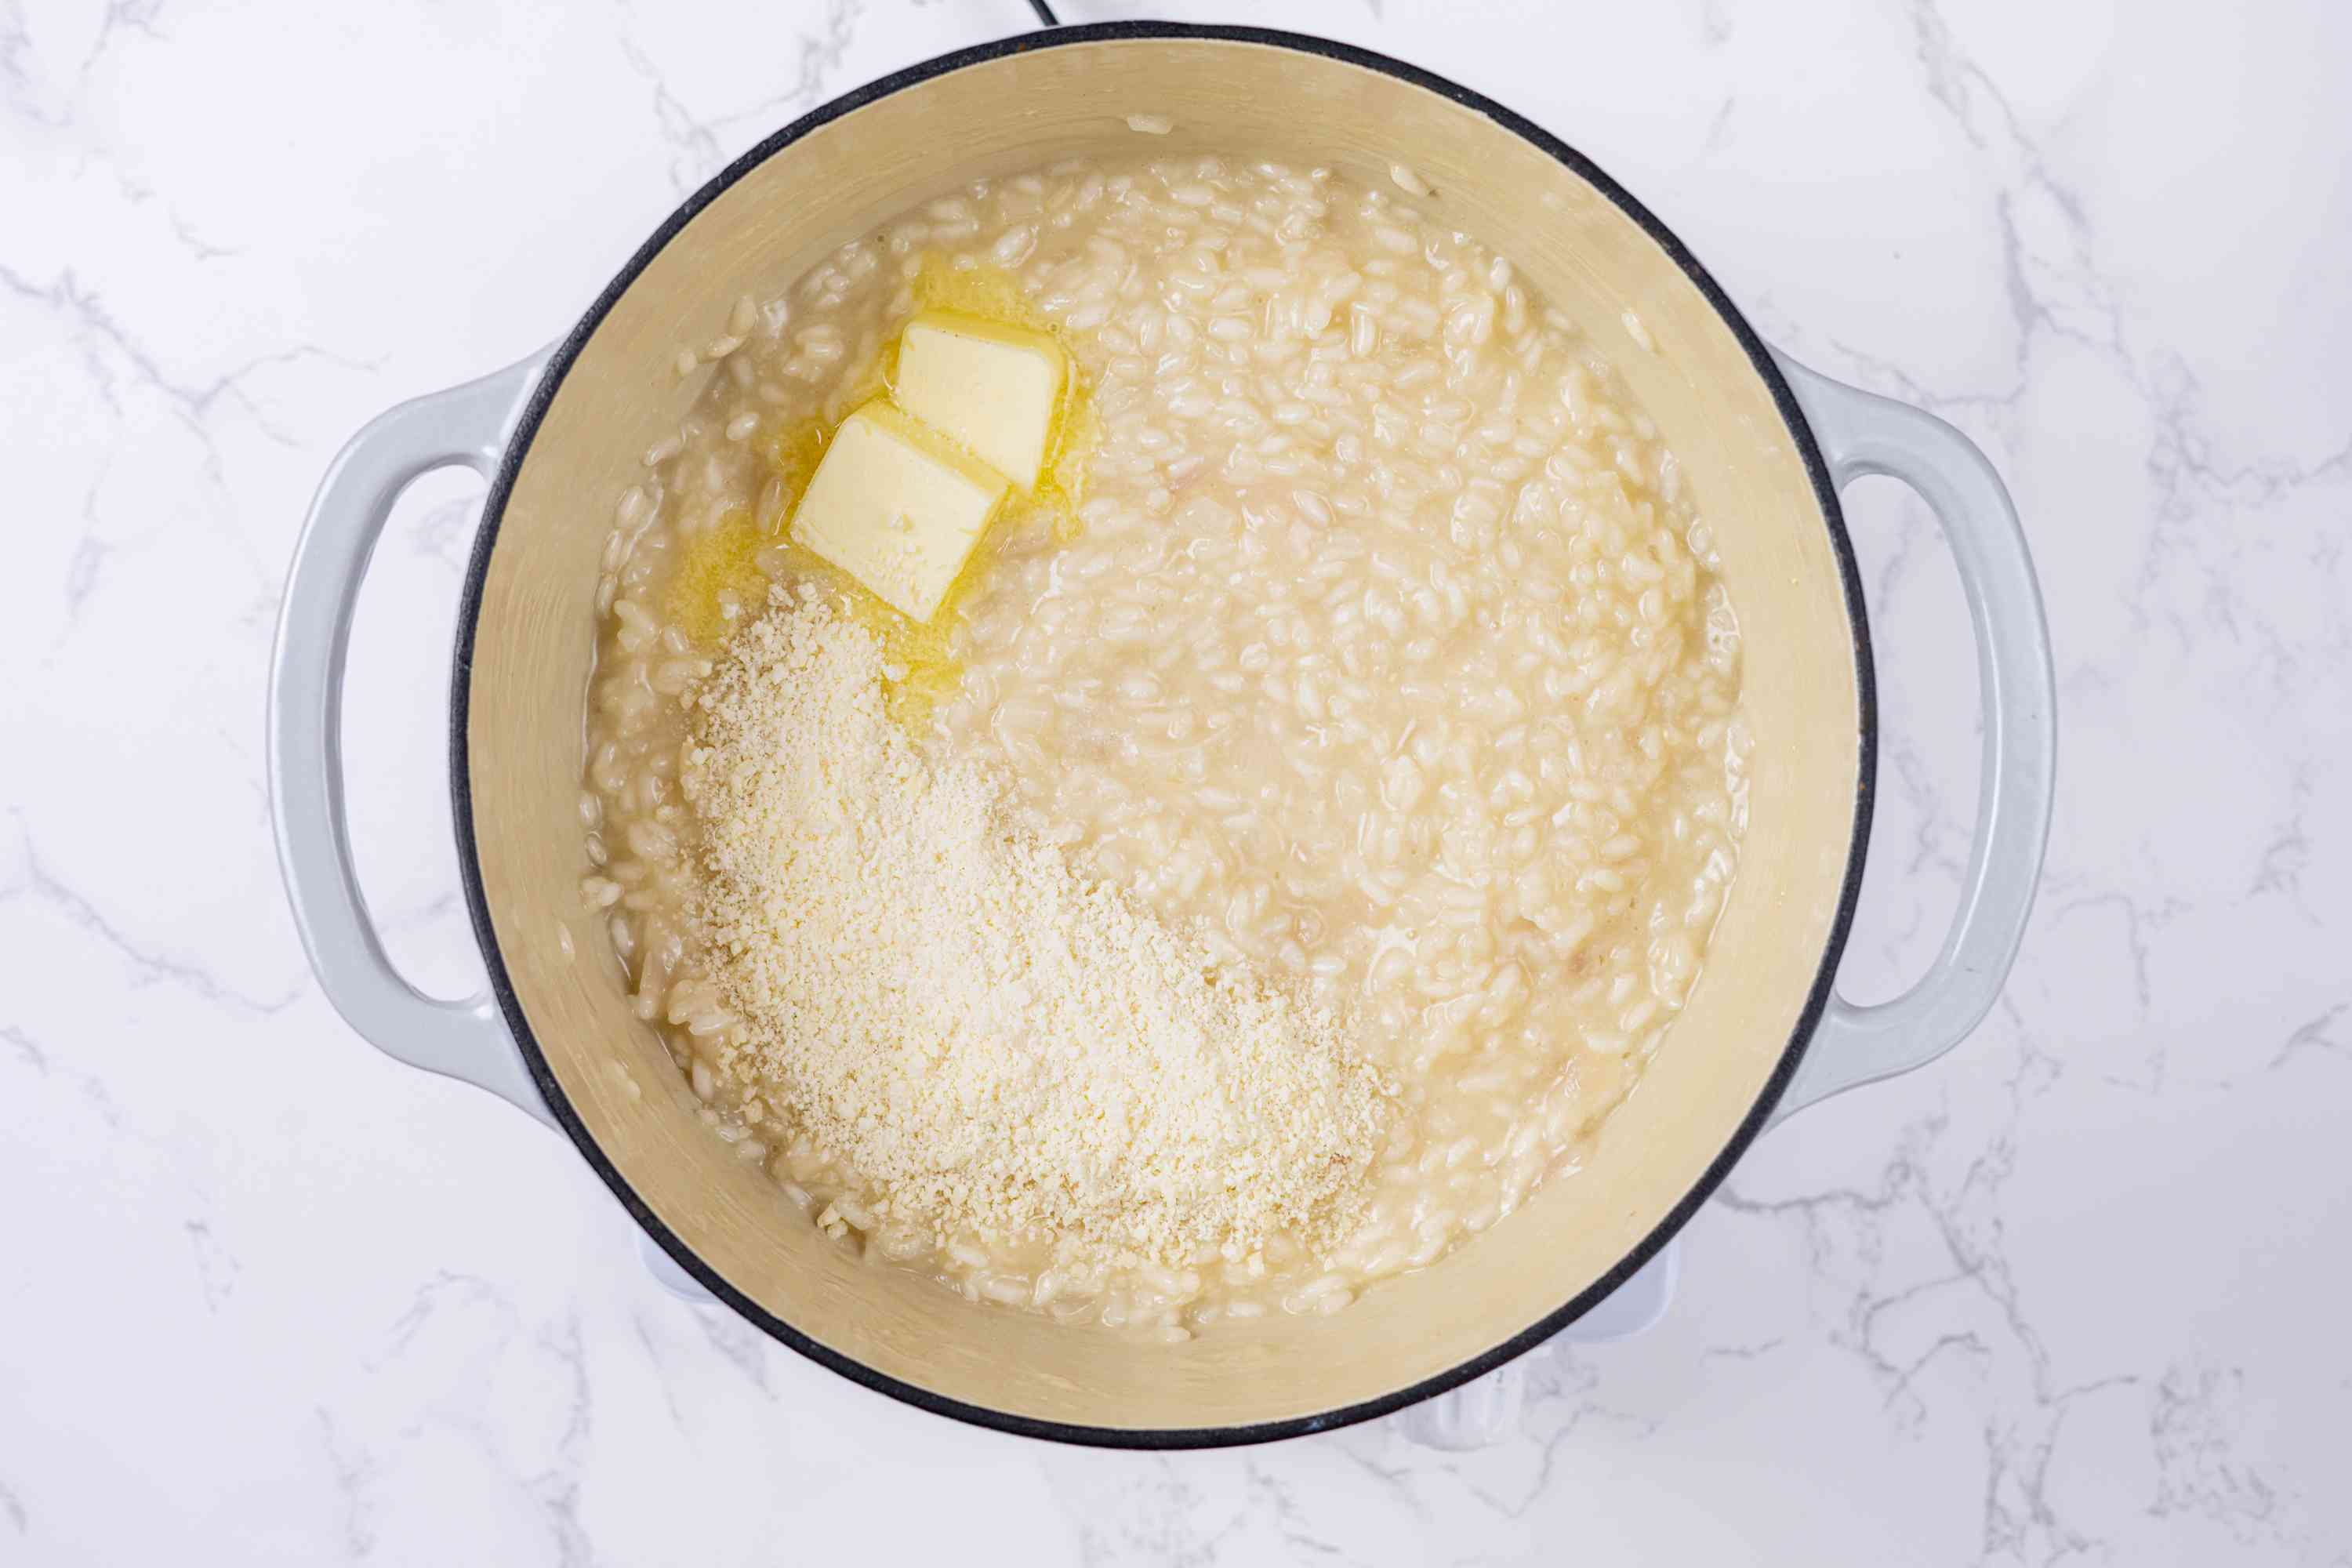 butter and the Parmesan cheese added to the risotto in the pot